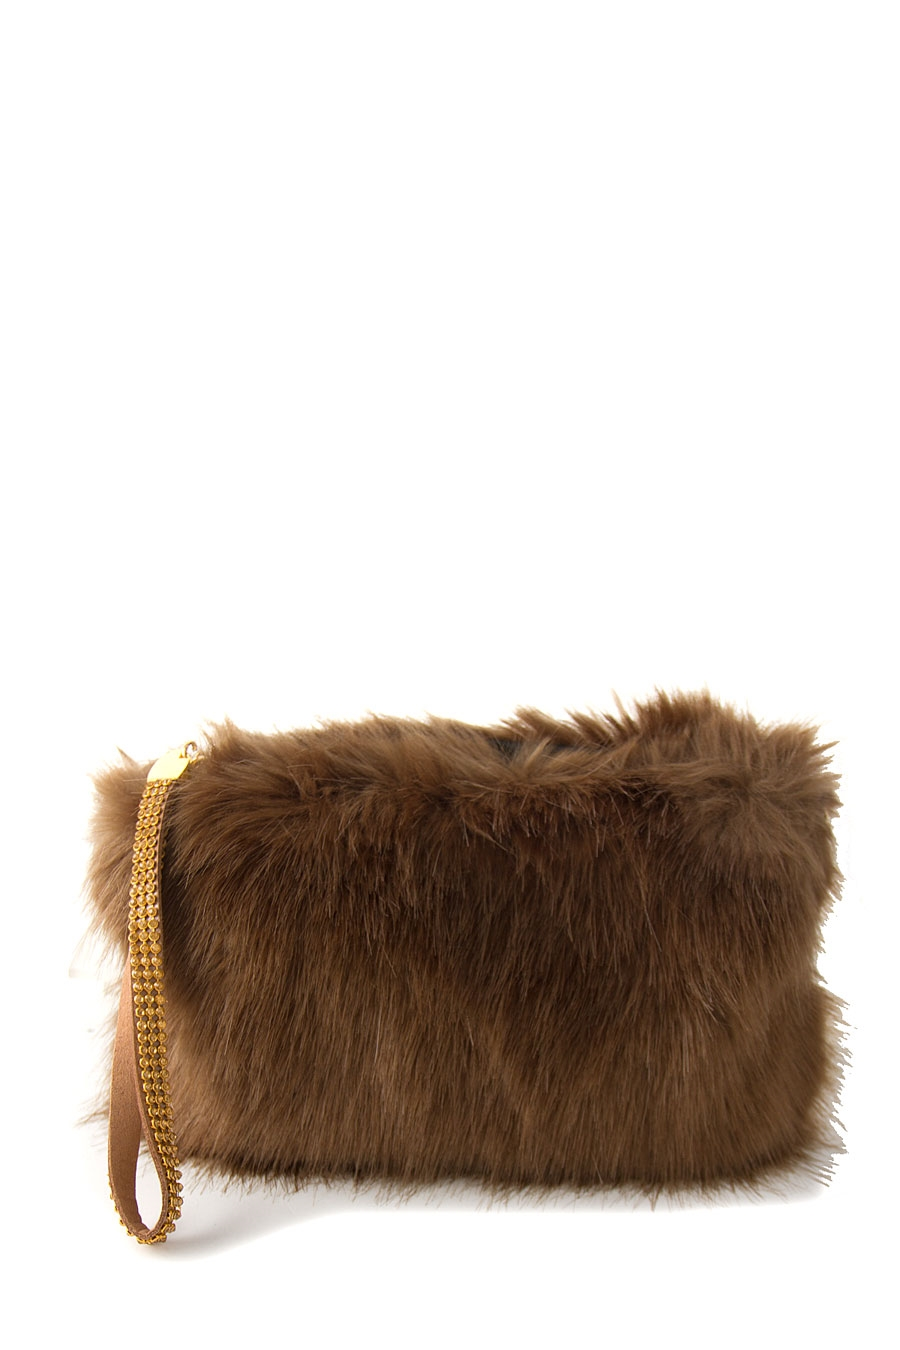 FASHION FAUX FUR CLUTCH - orangeshine.com